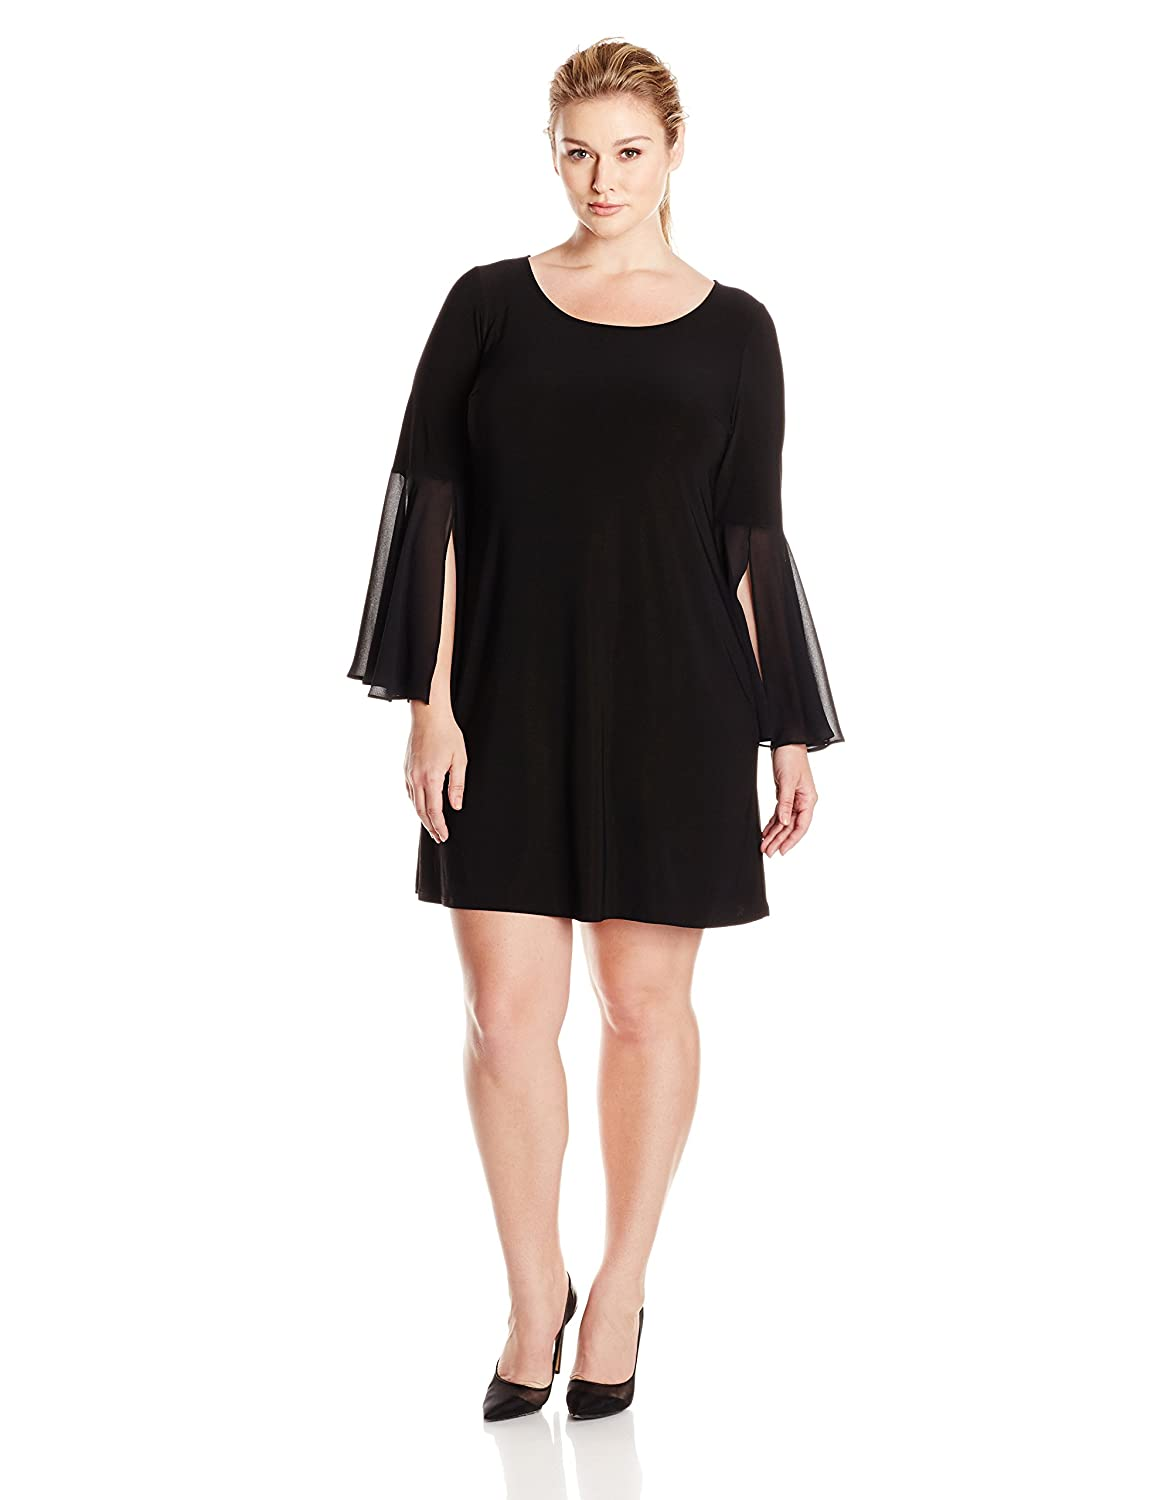 MSK Women's Plus-Size Round Neck, Knit-to-Woven Solid Bell Sleeve- Plus MSK Women's Dresses 21365